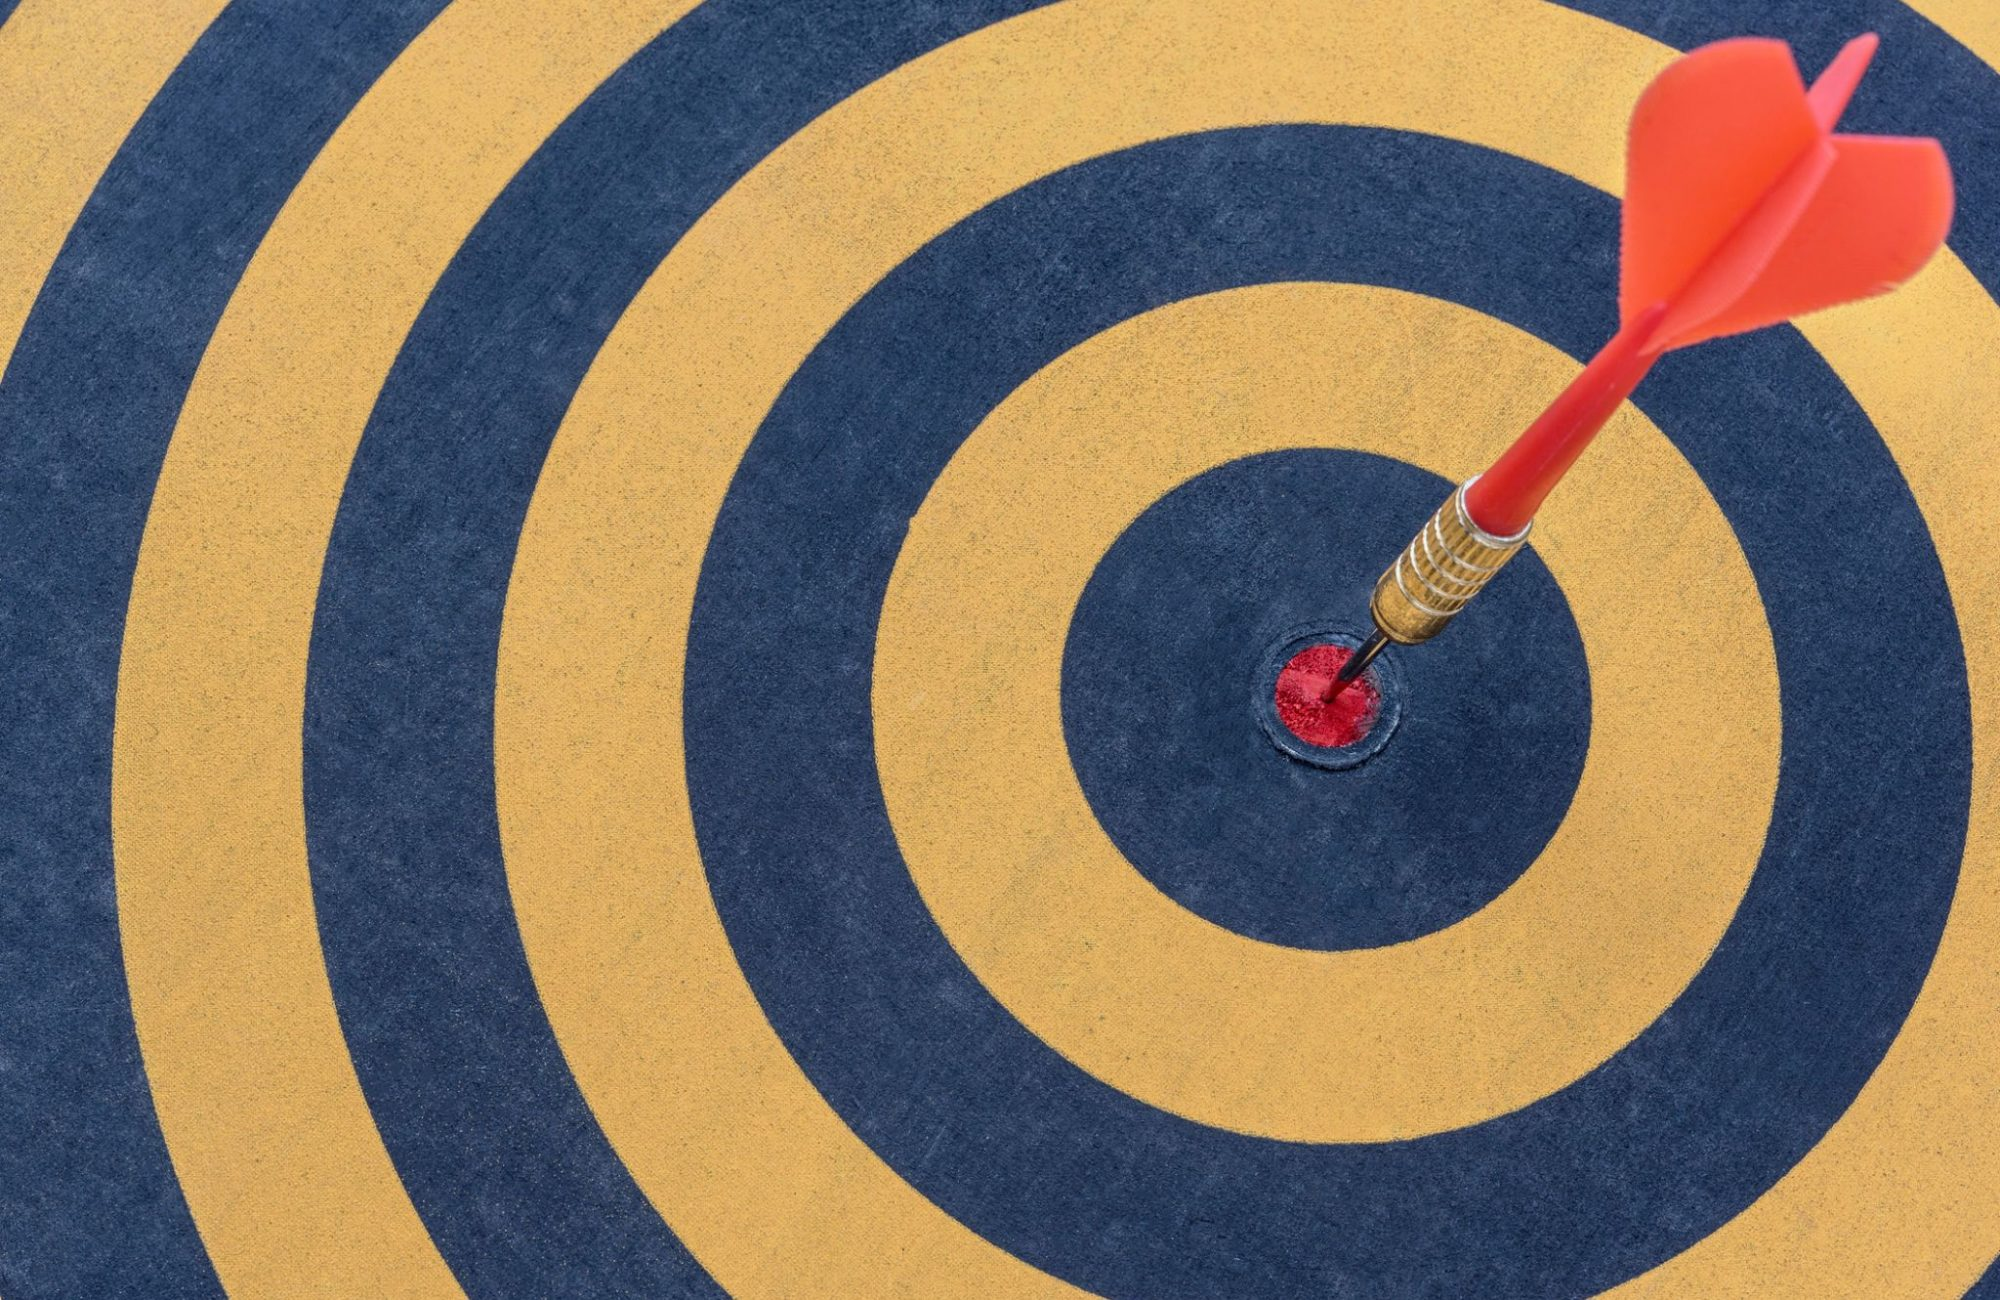 Dart target with arrow on bullseye, Goal target success business investment financial strategy concept, abstract background